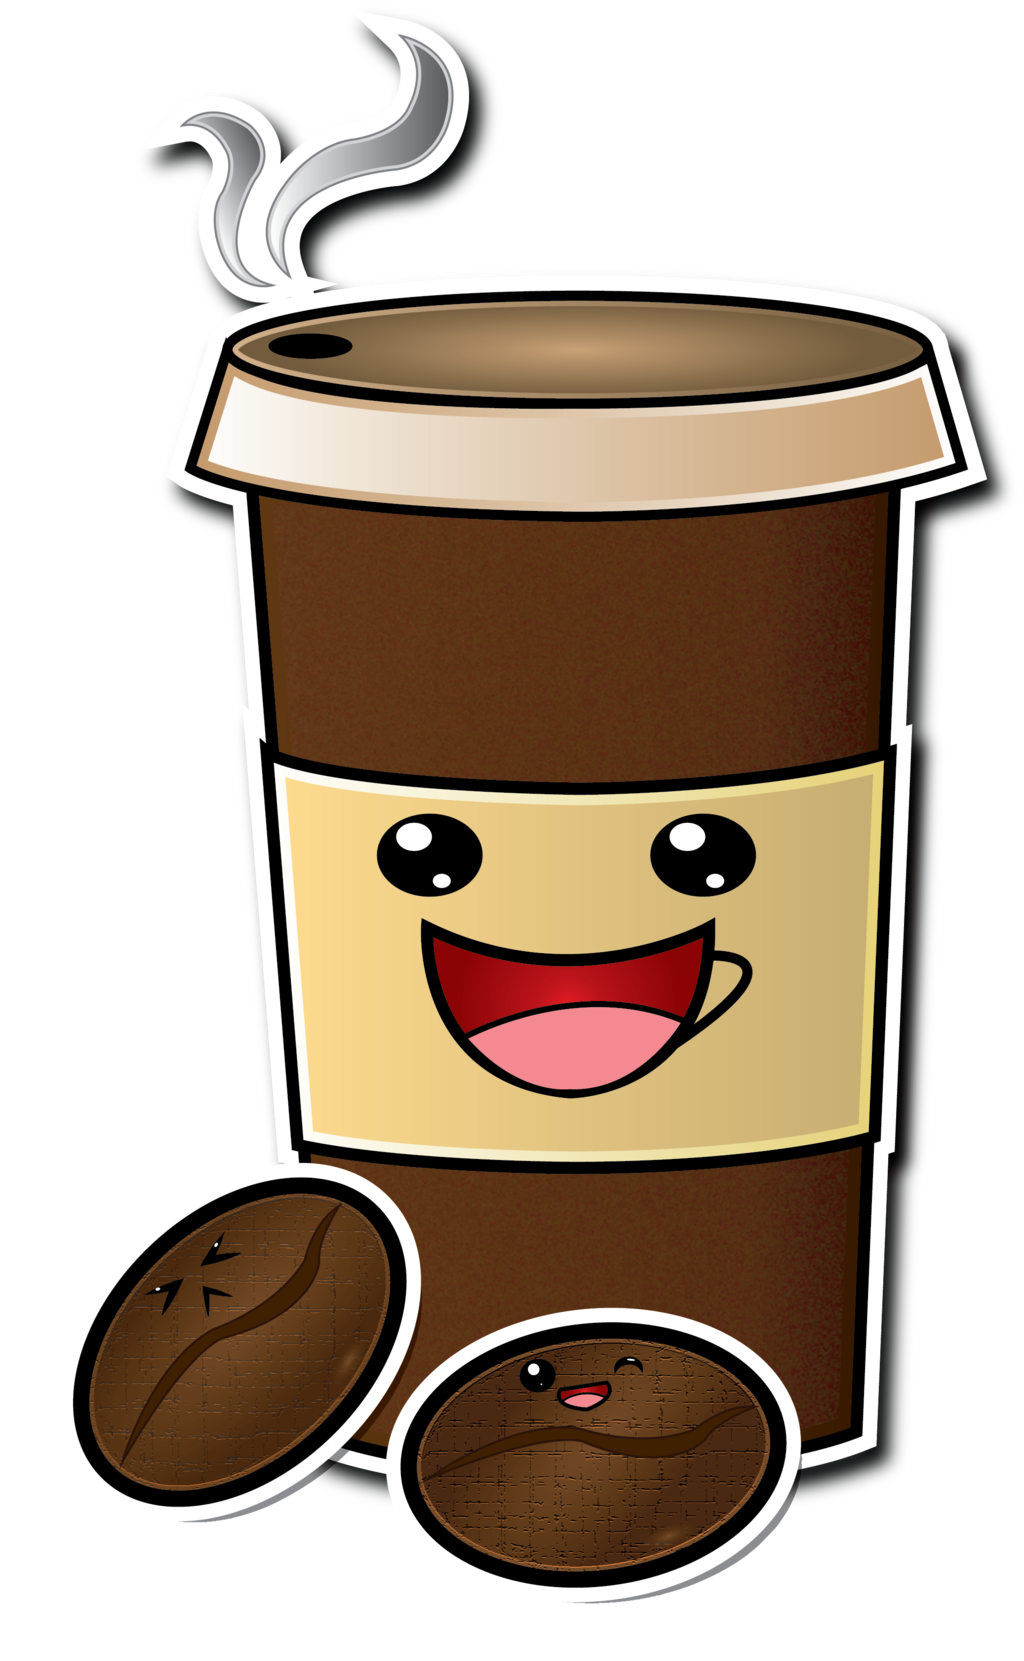 Starbuck falling over animated png. Cute cartoon coffee cup